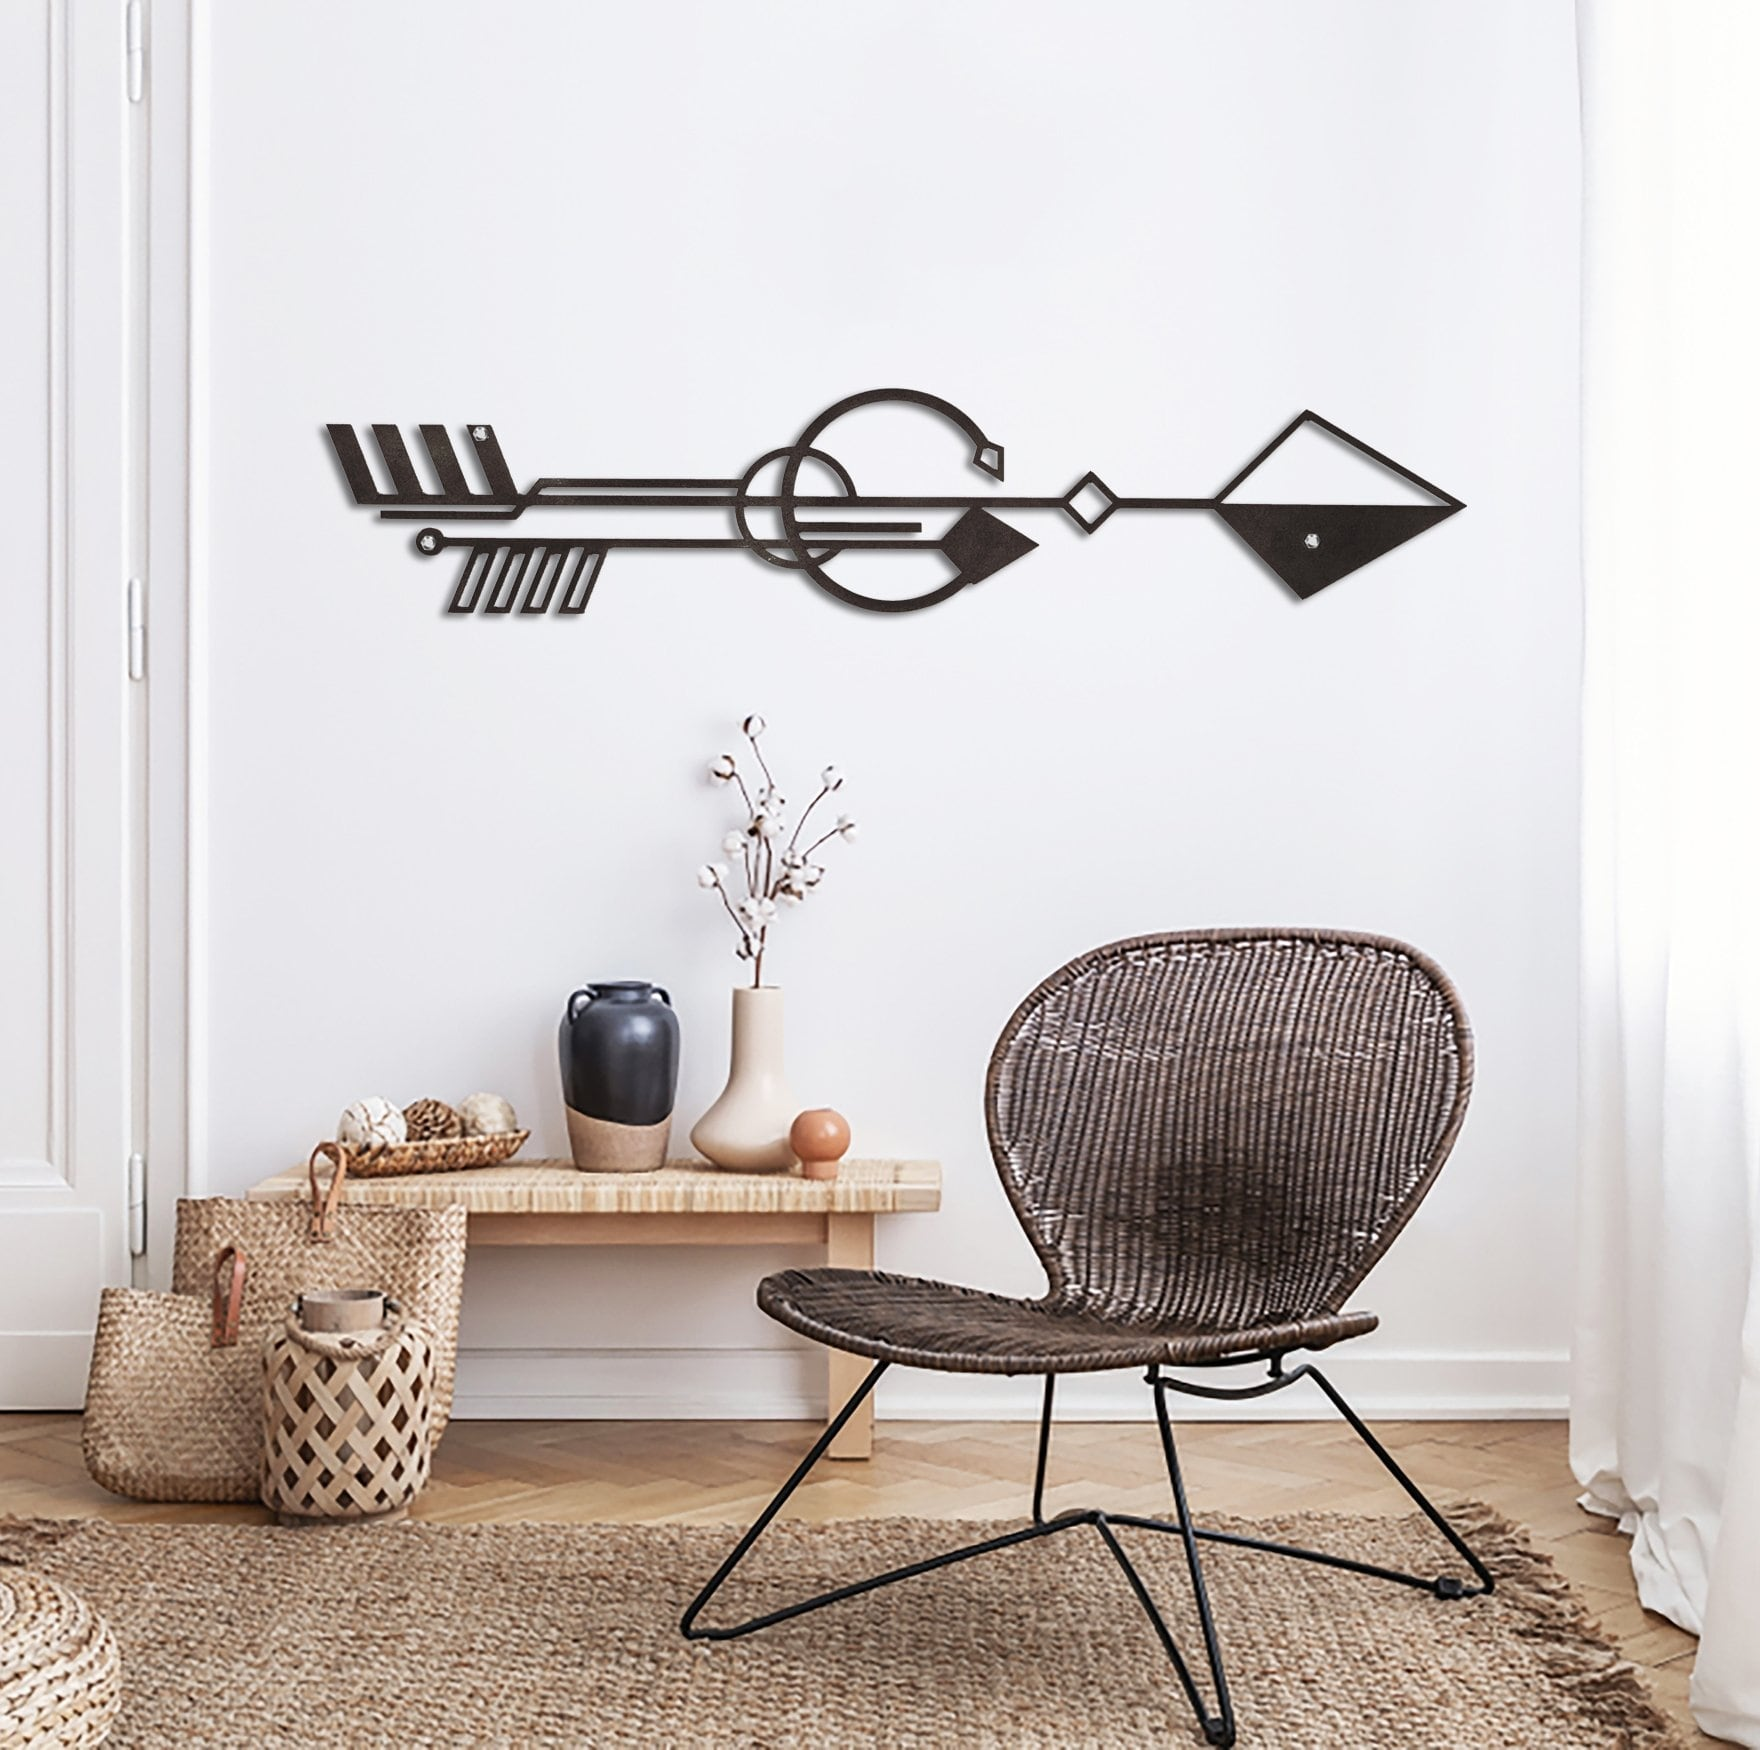 Nubio art wall decoration in metal for a boho interior